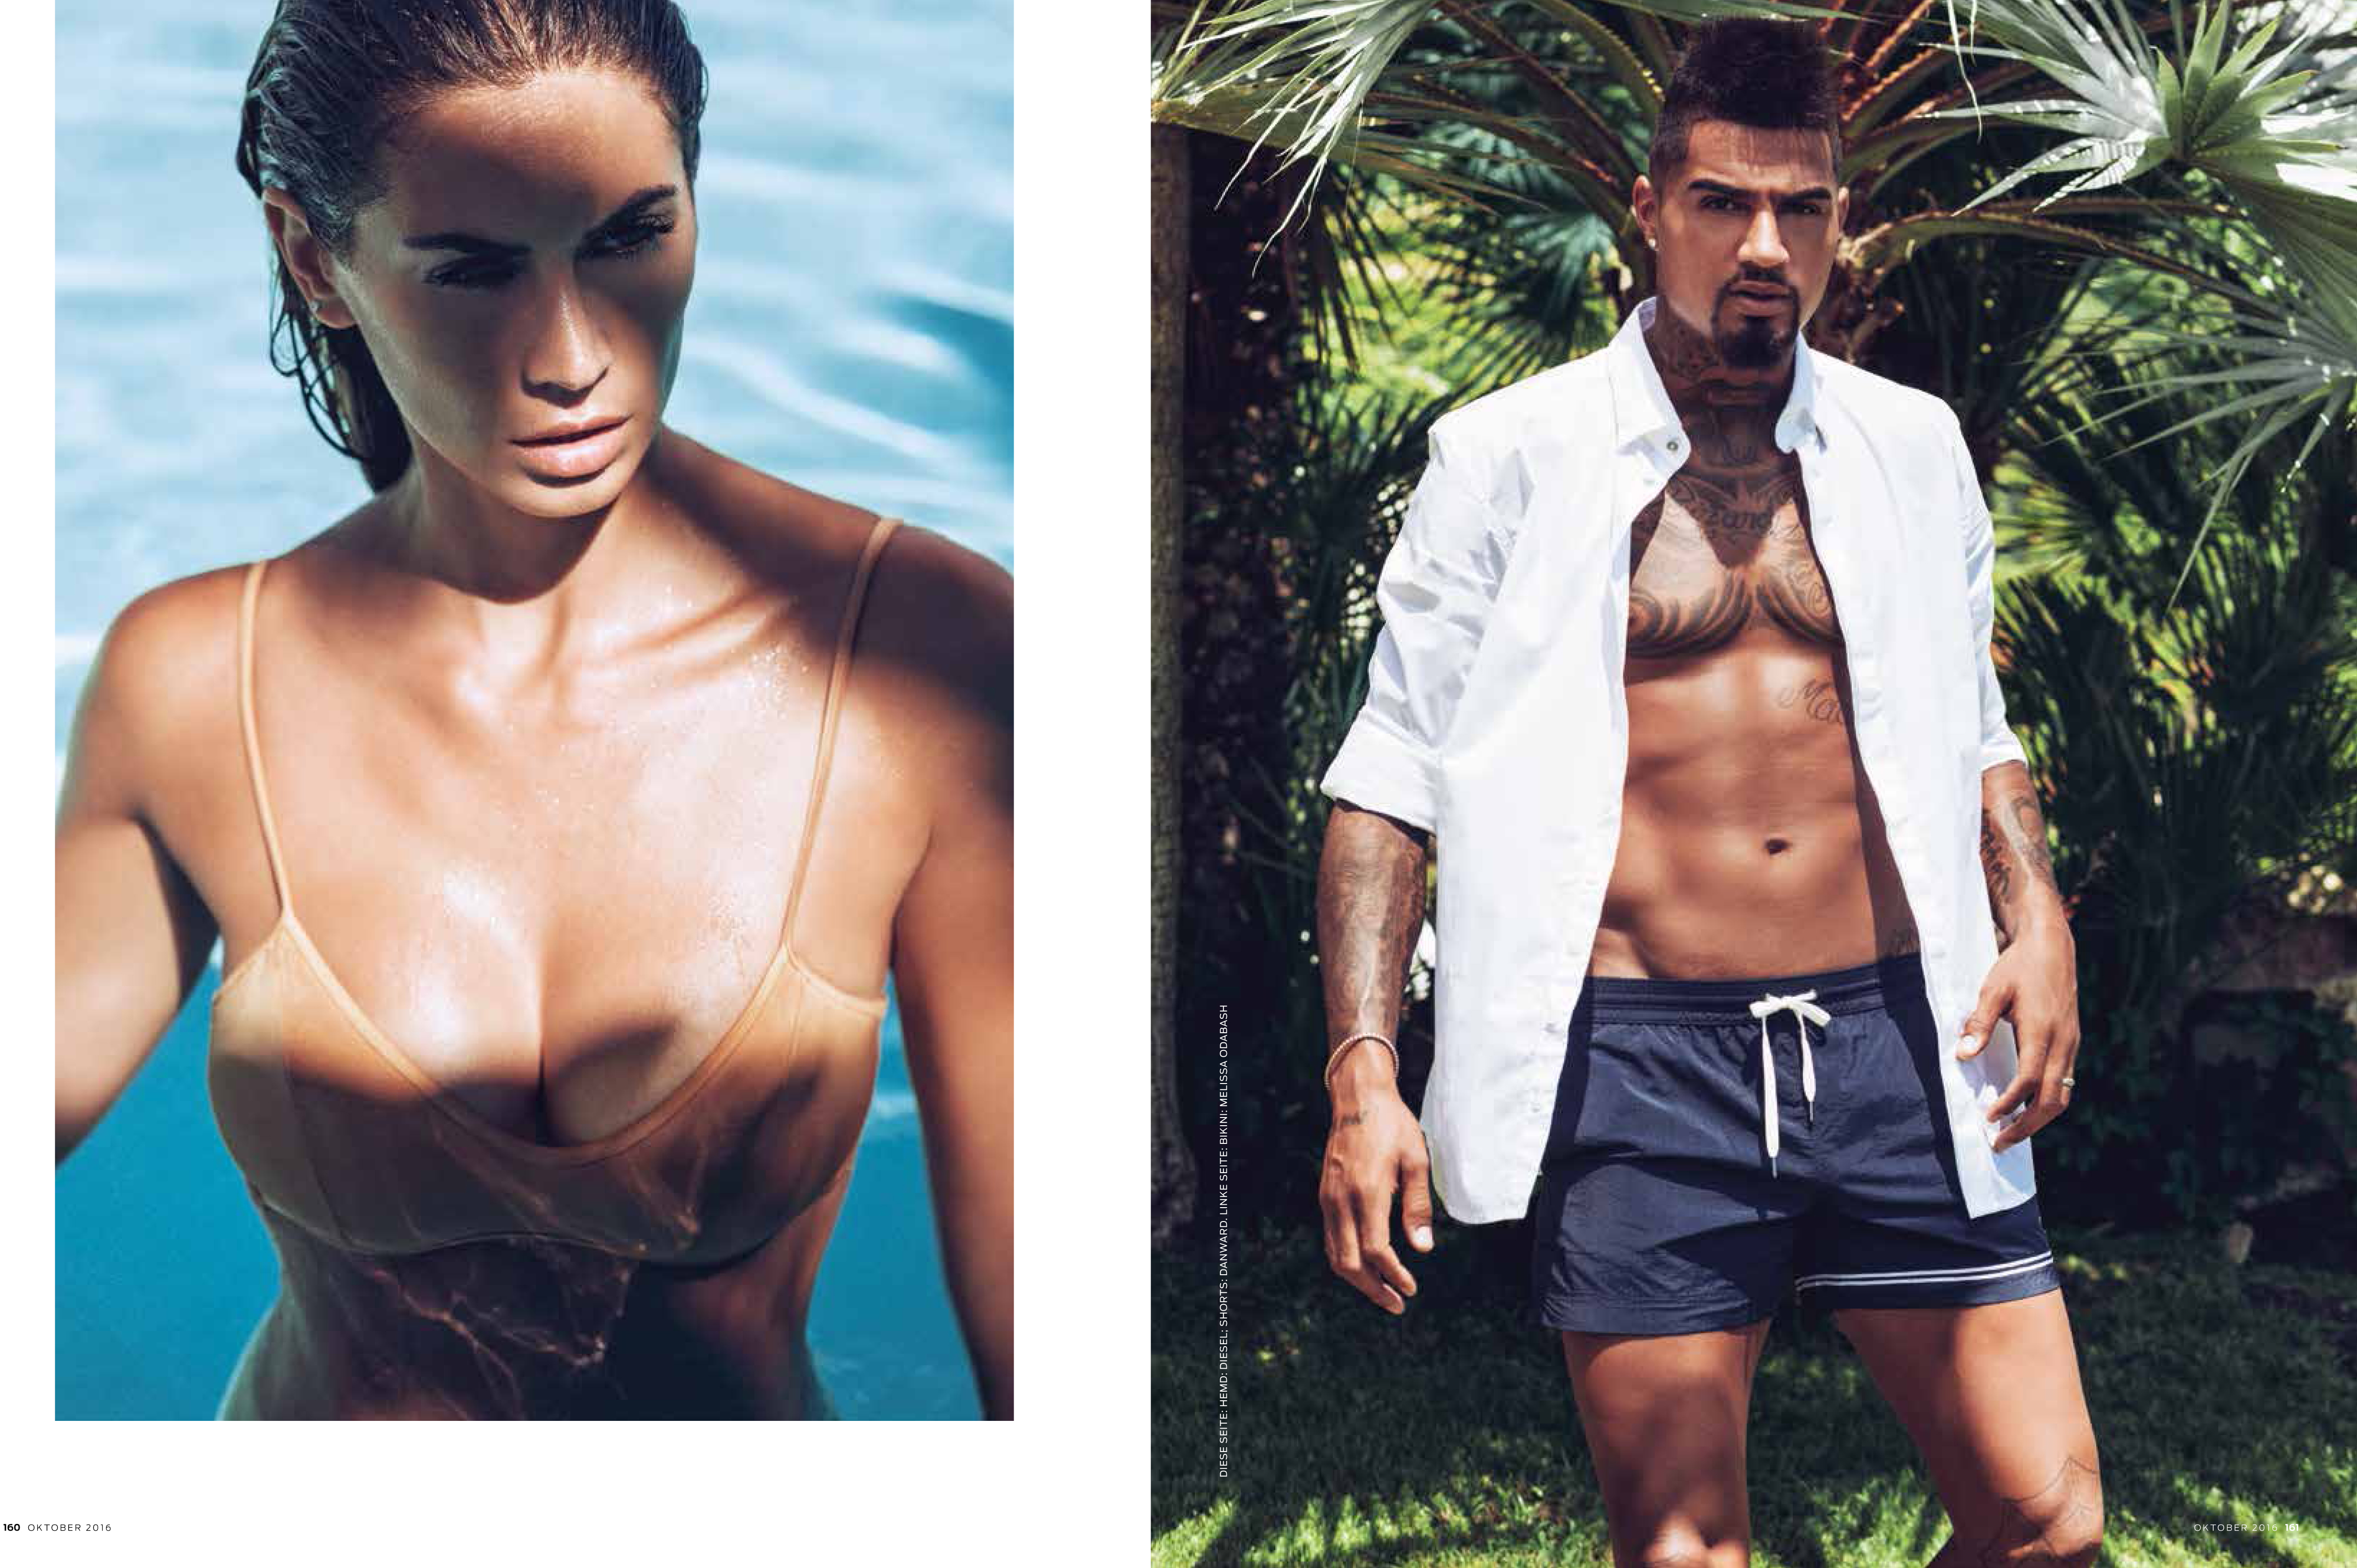 CHRISTIAN BORTH PHOTOGRAPHY GQ – KEVIN PRINCE BOATENG / MELISSA SATTA